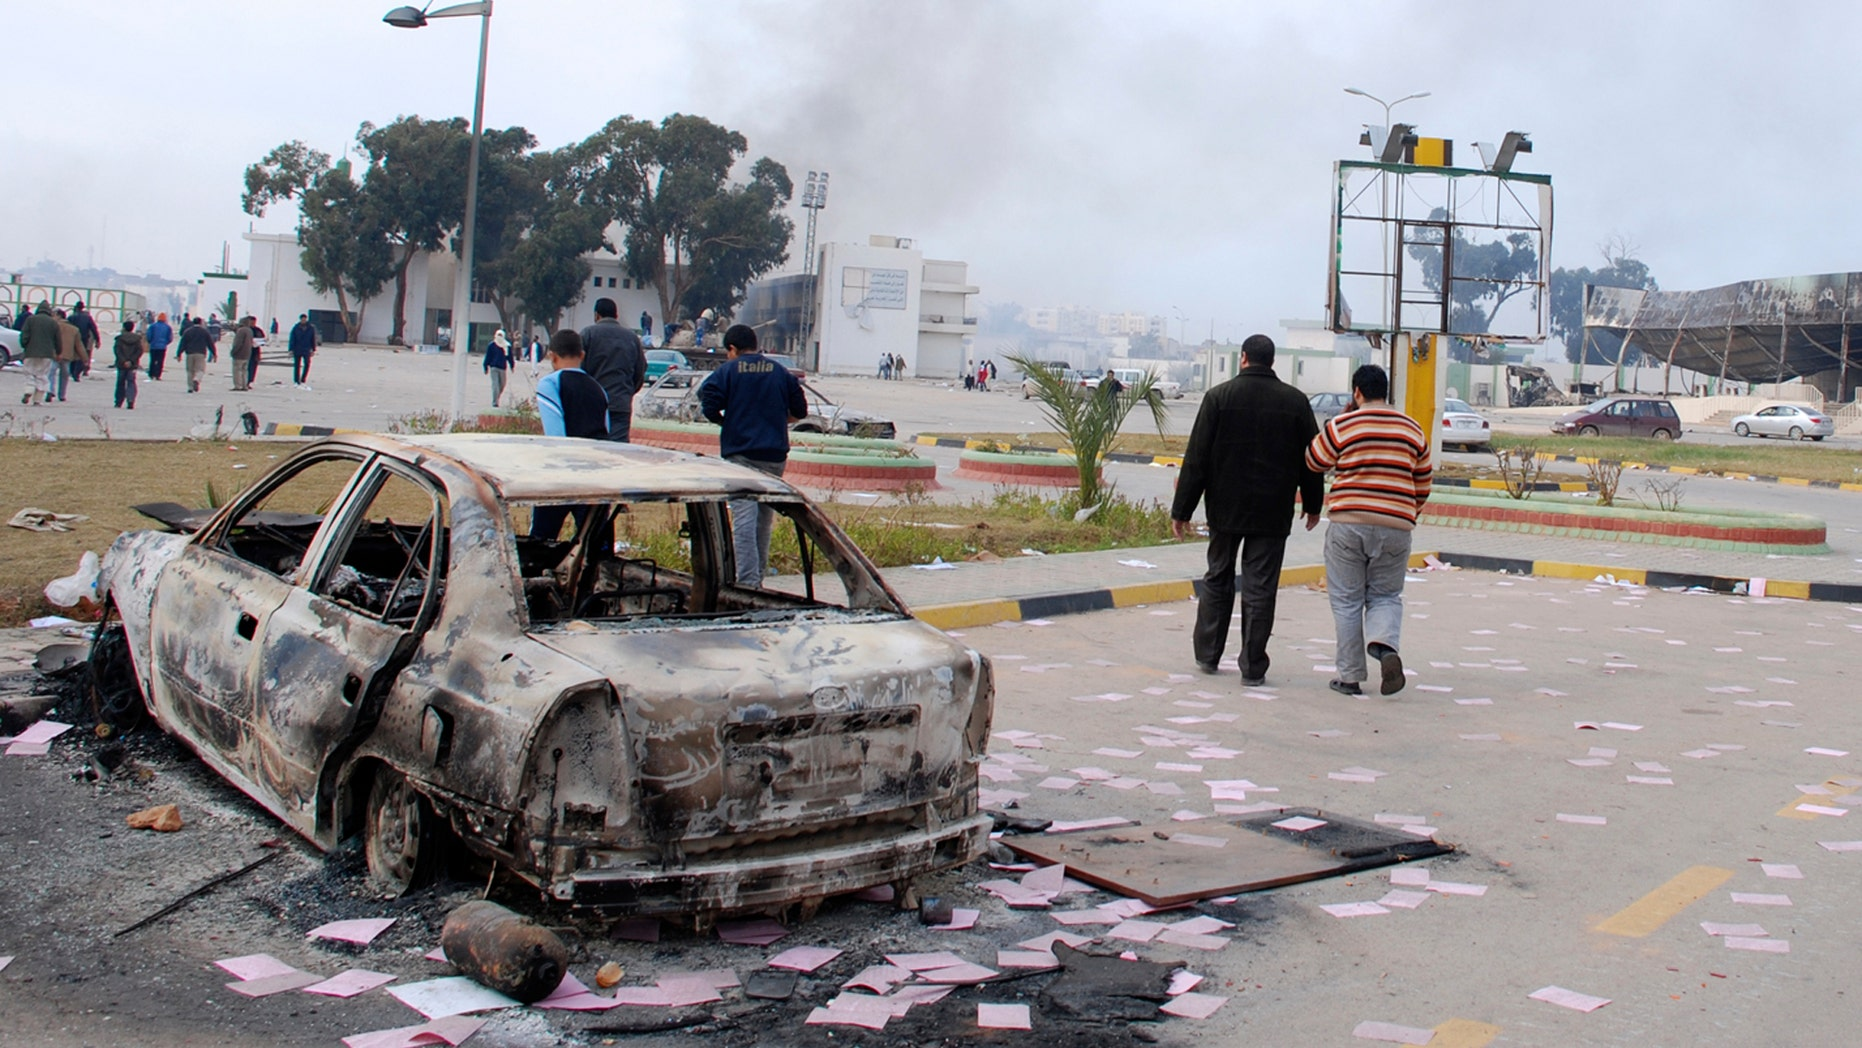 Feb. 21: Residents are seen walking past a burned-out vehicle in Benghazi, Libya. Stocks have dropped and oil prices are on the rise as protests sweep through the Libya.